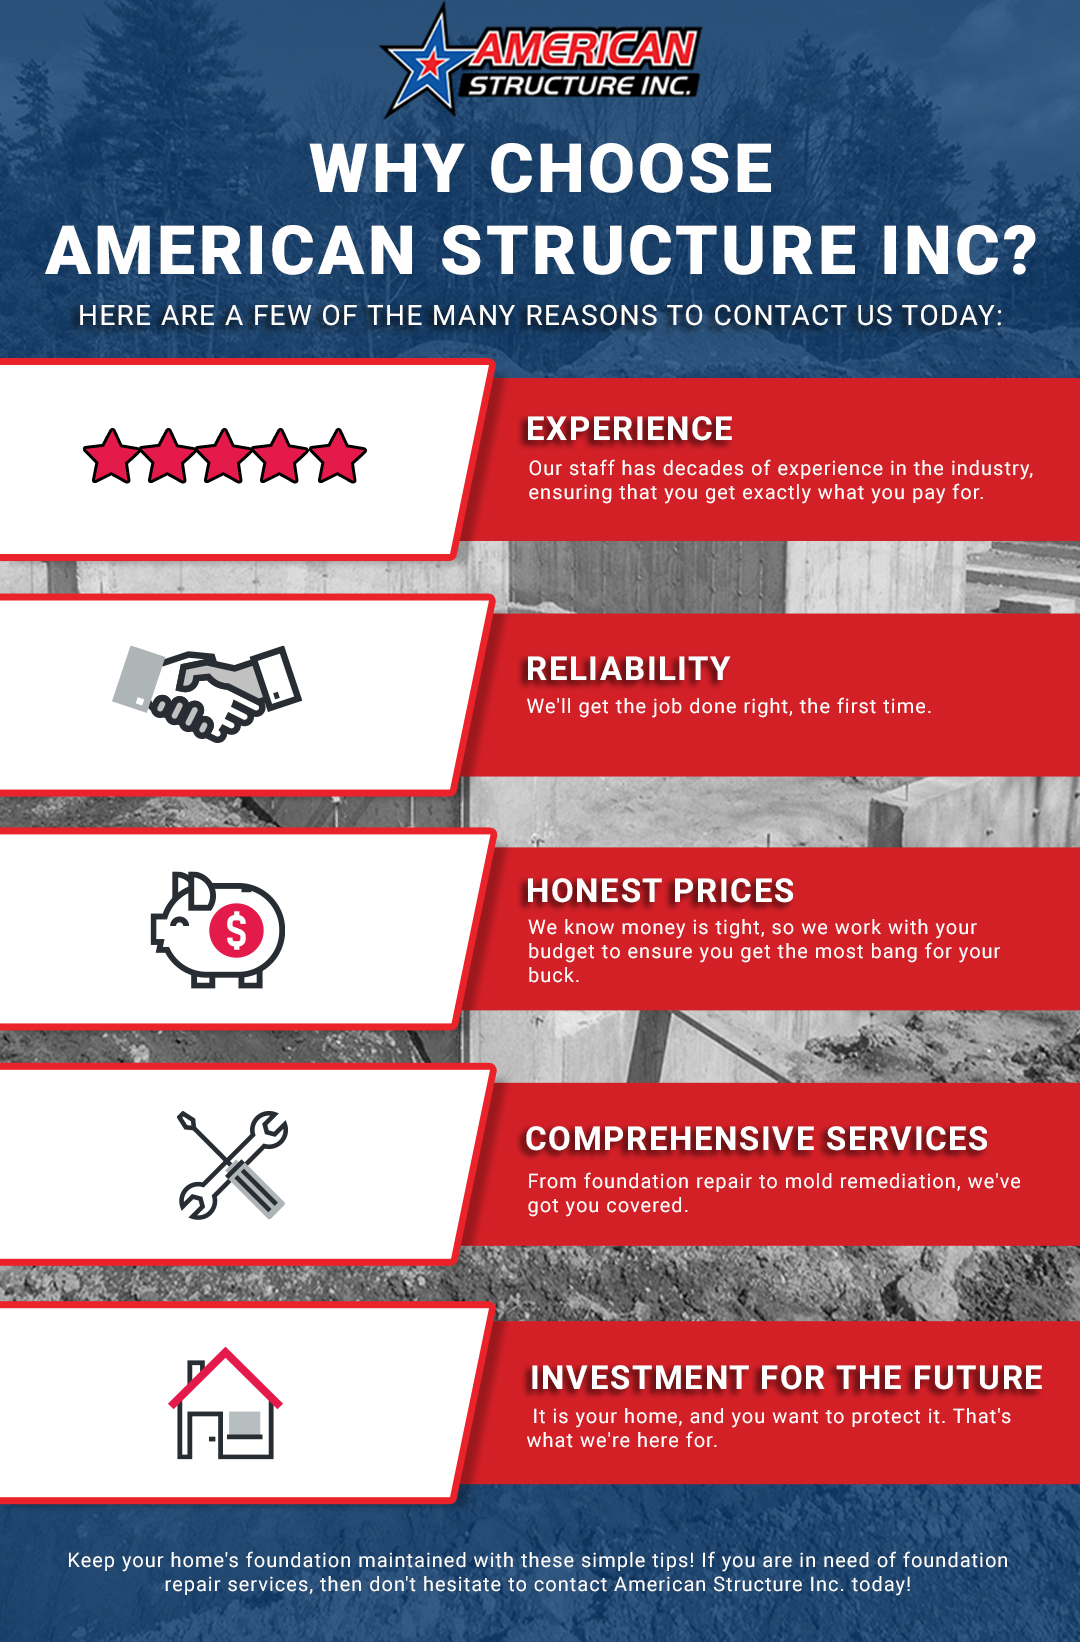 Why Choose American Structure Inc. Infographic